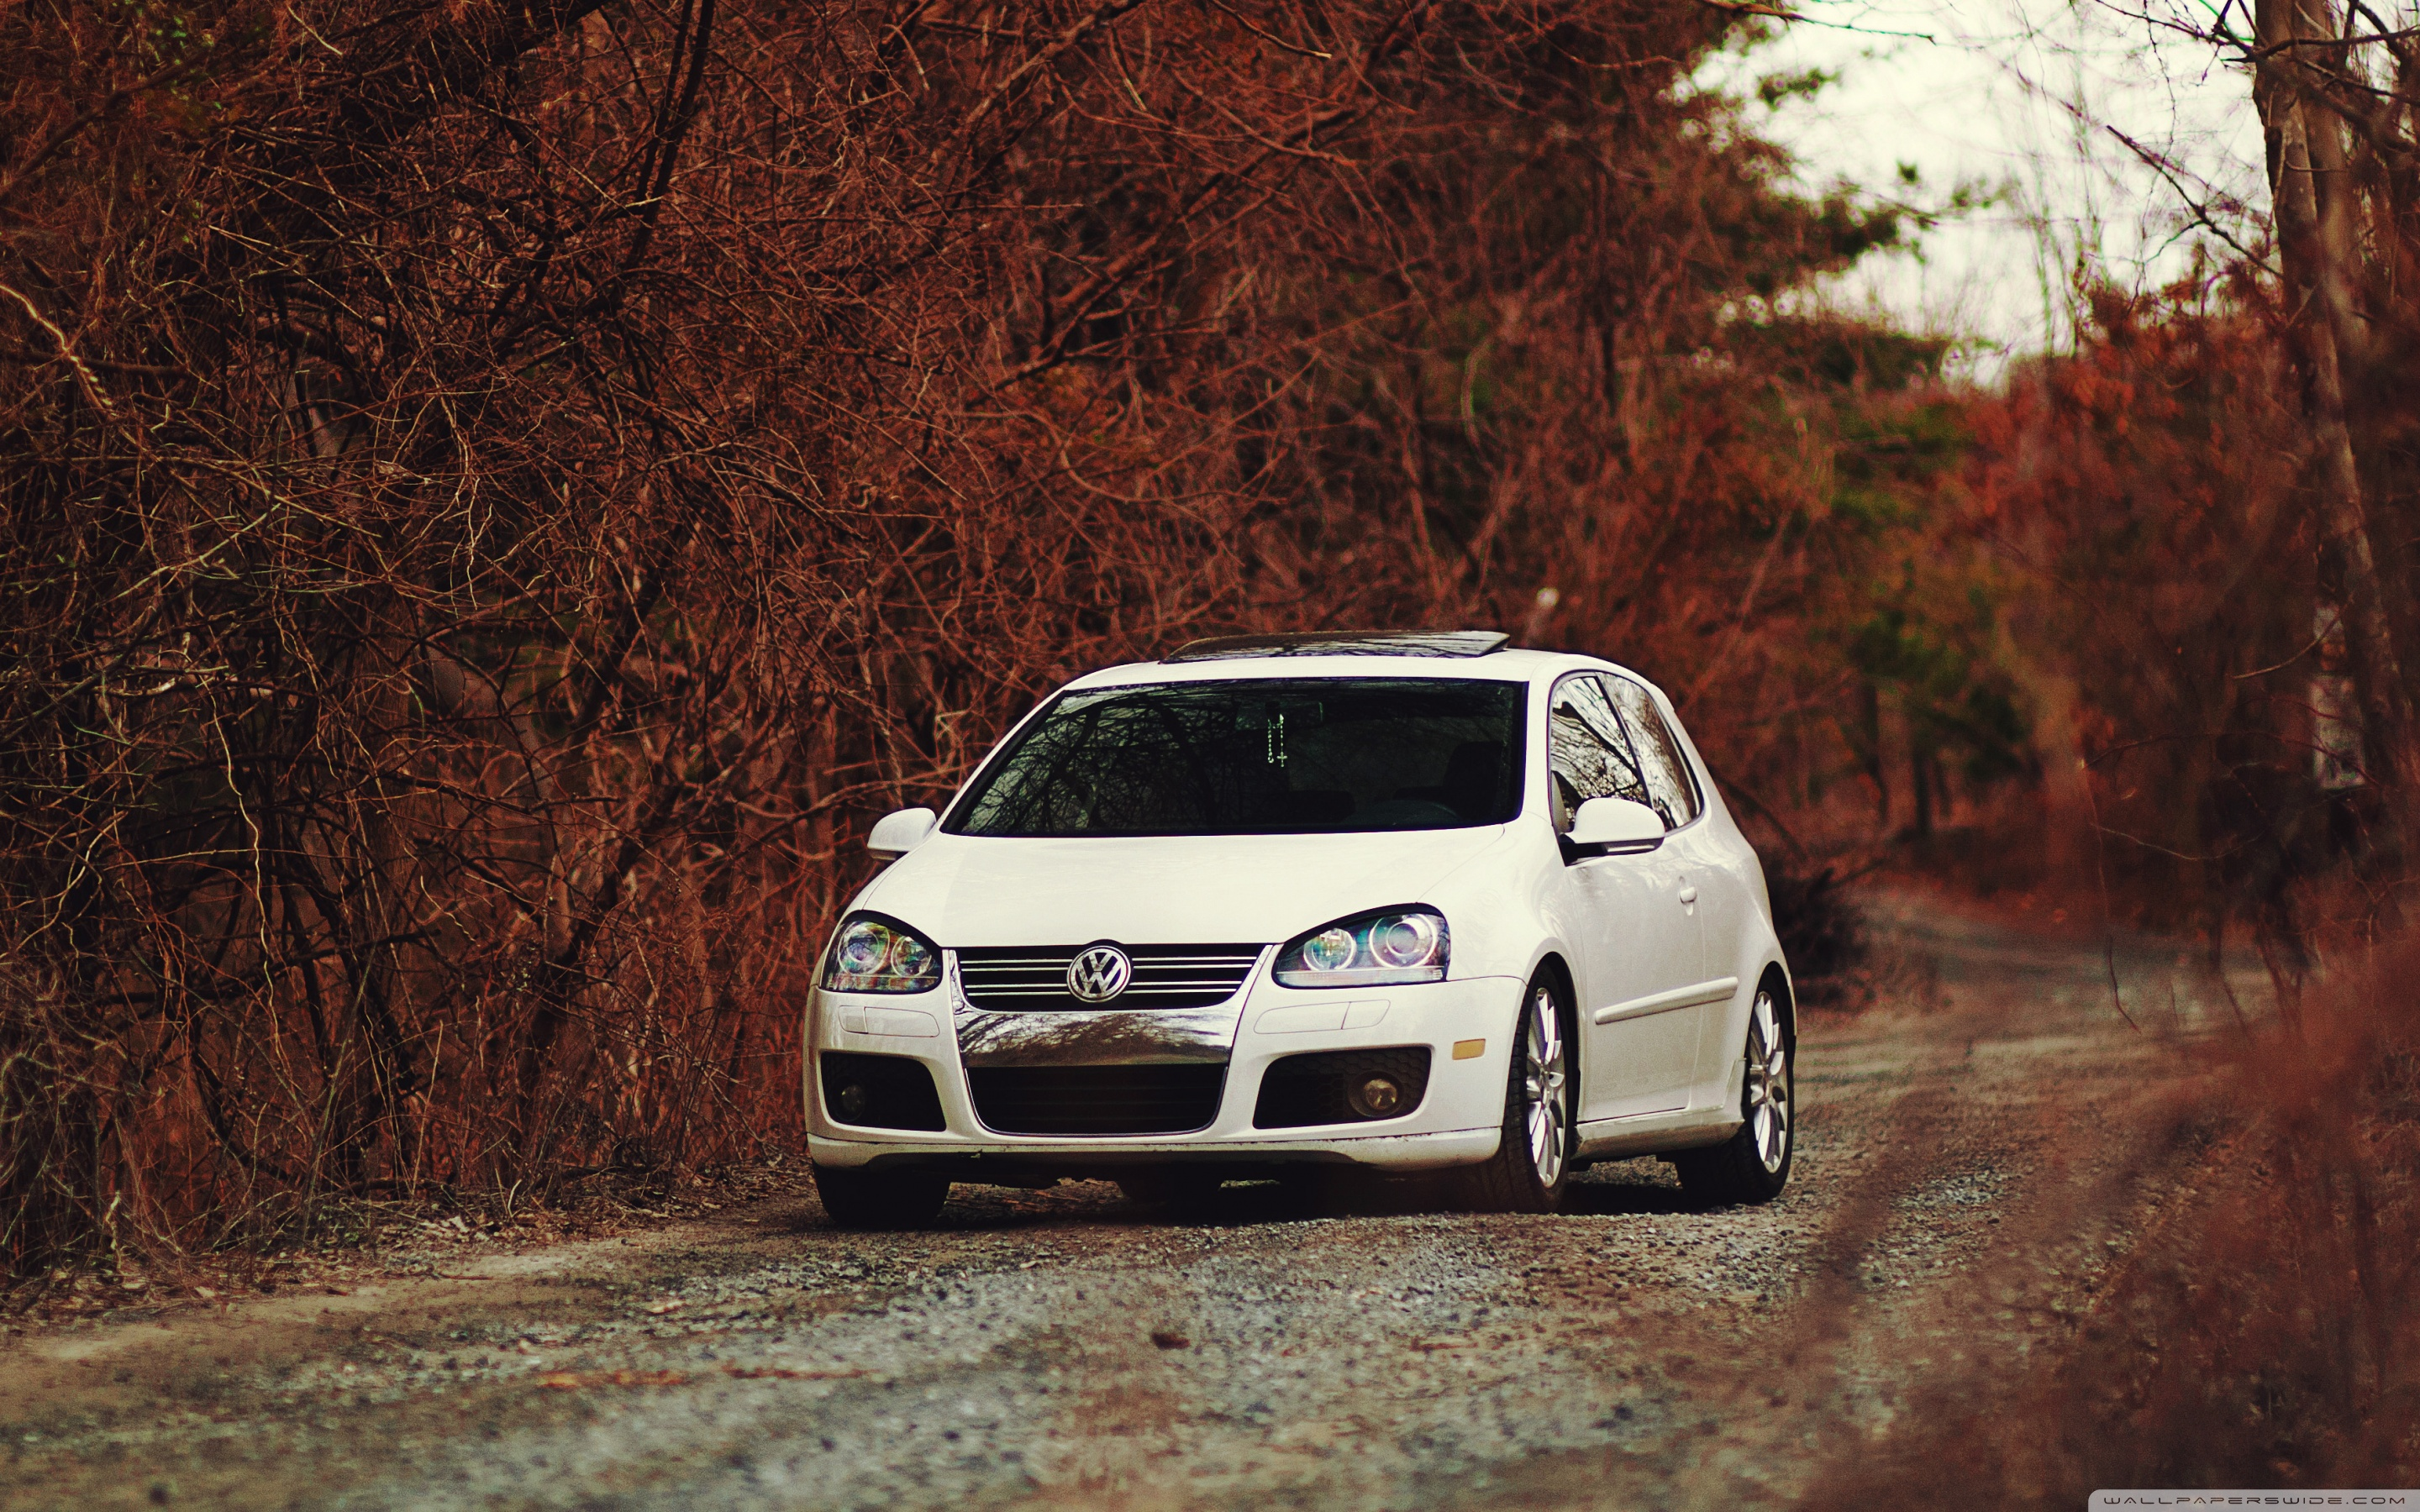 Vw Golf 5 Gti 2880x1800 Wallpaper Teahub Io